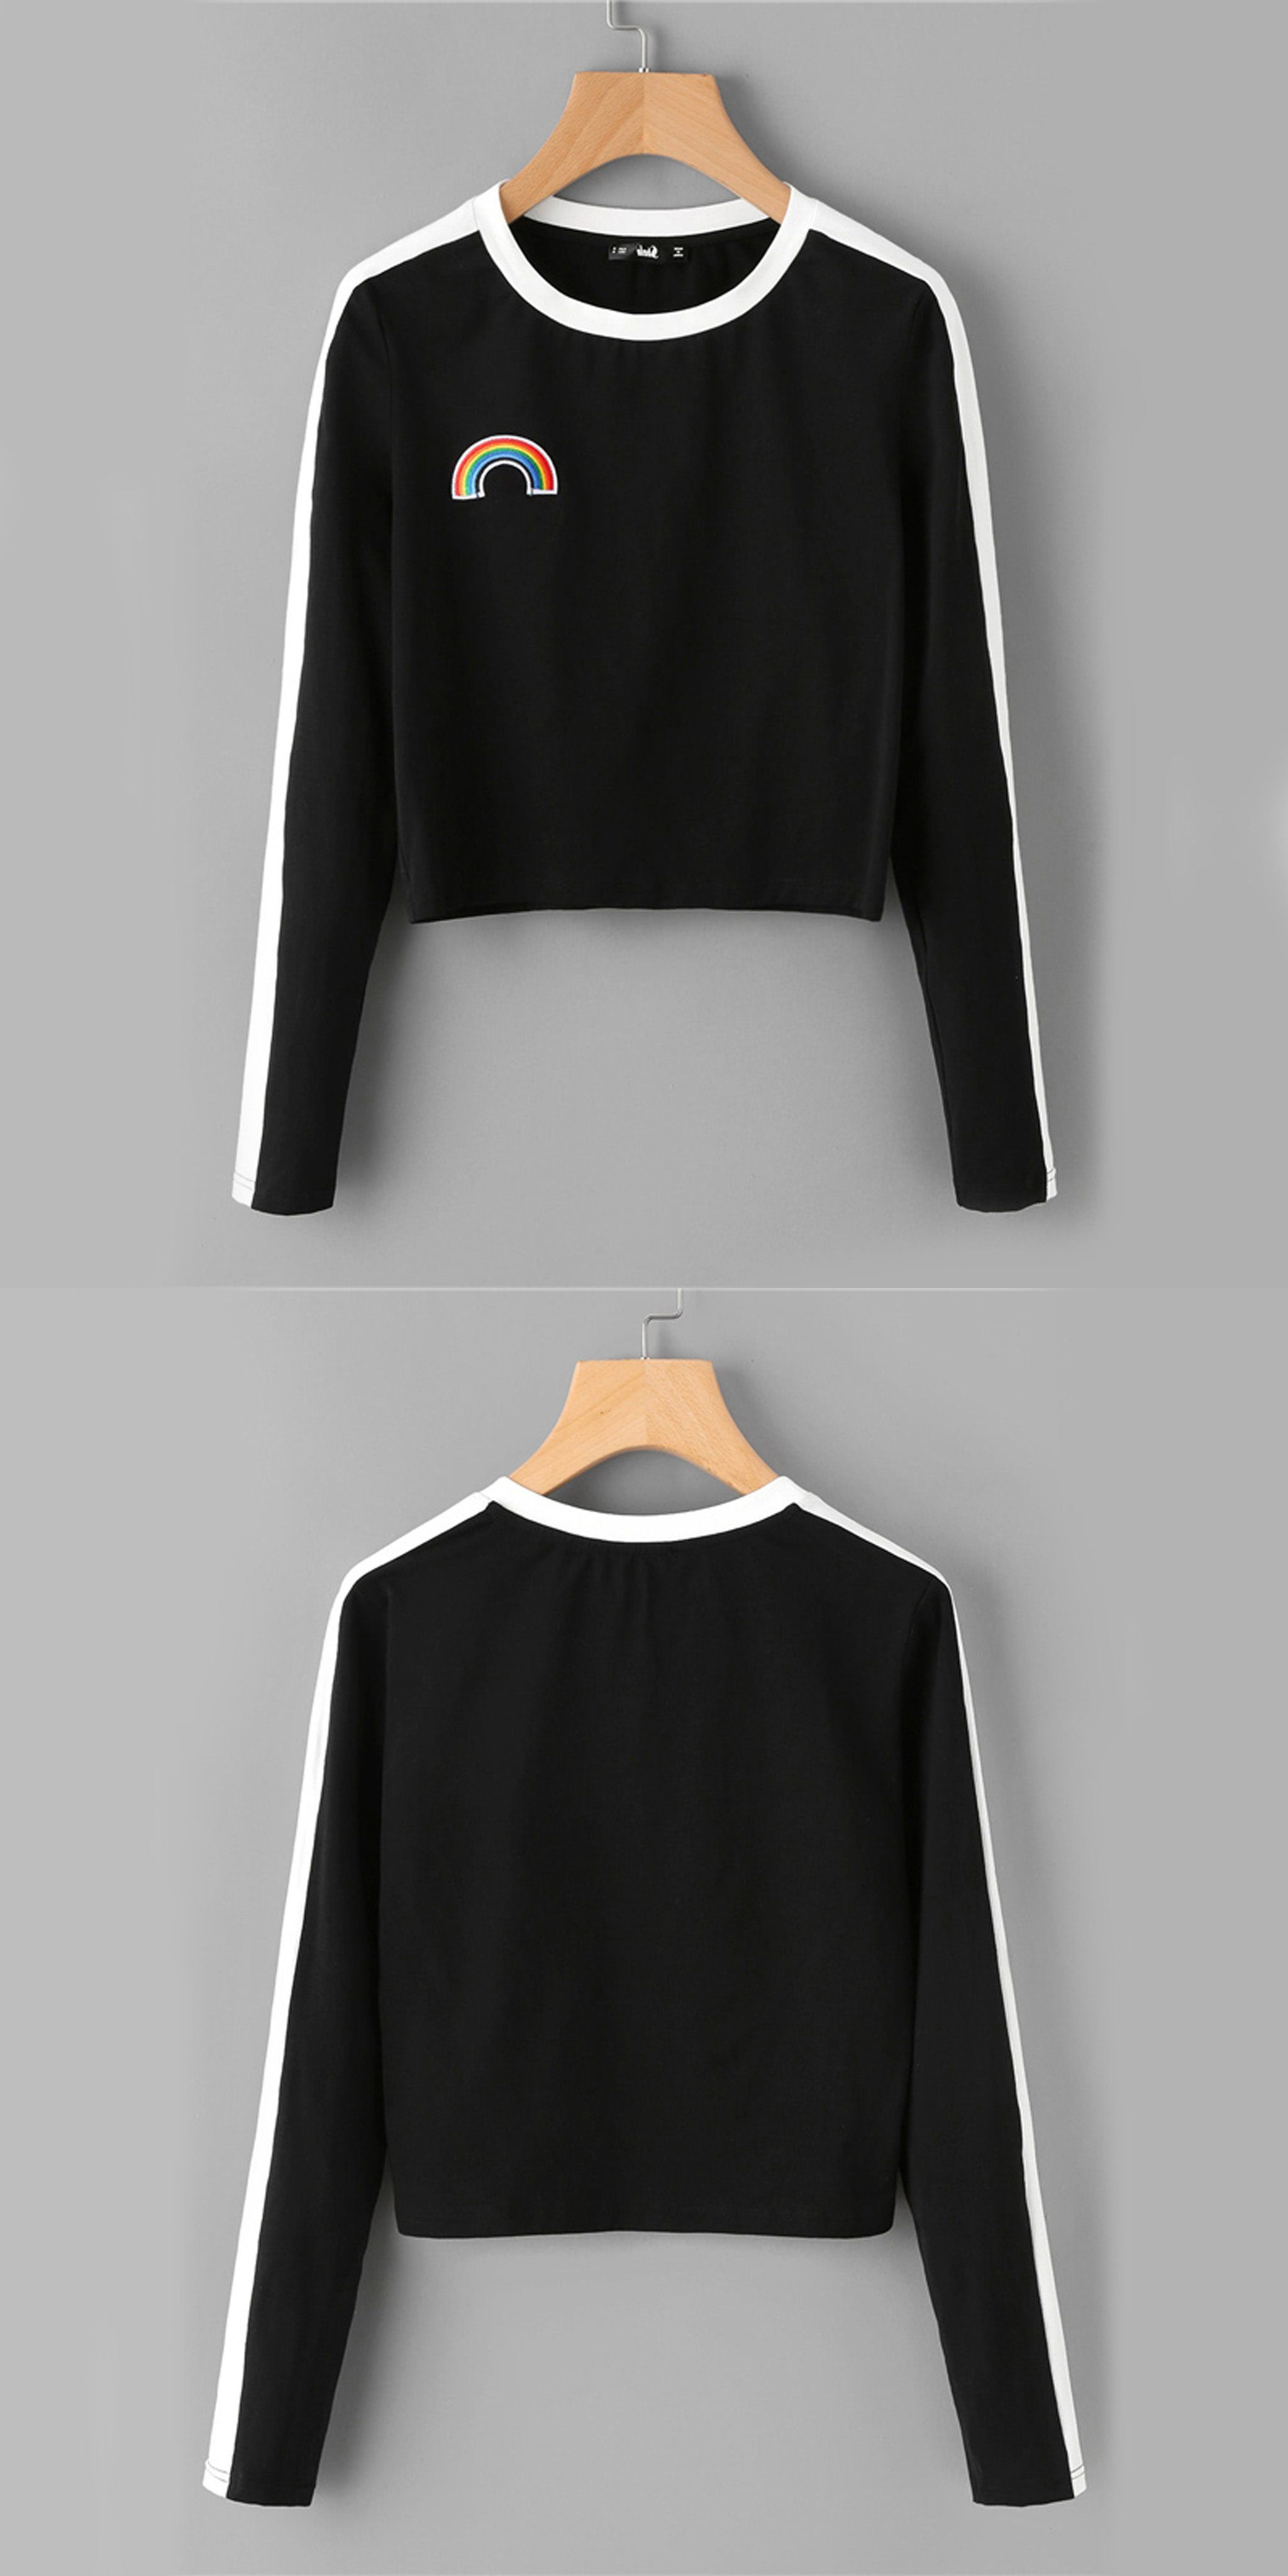 c2fd3fed0c5d65 Casual Outfit Ideas for Teen Girls for School Spring 2018 - Rainbow  Embroidered Crop Top Cropped Sweatshirt Sweater White Ribbing in Black -  Ideas de ...